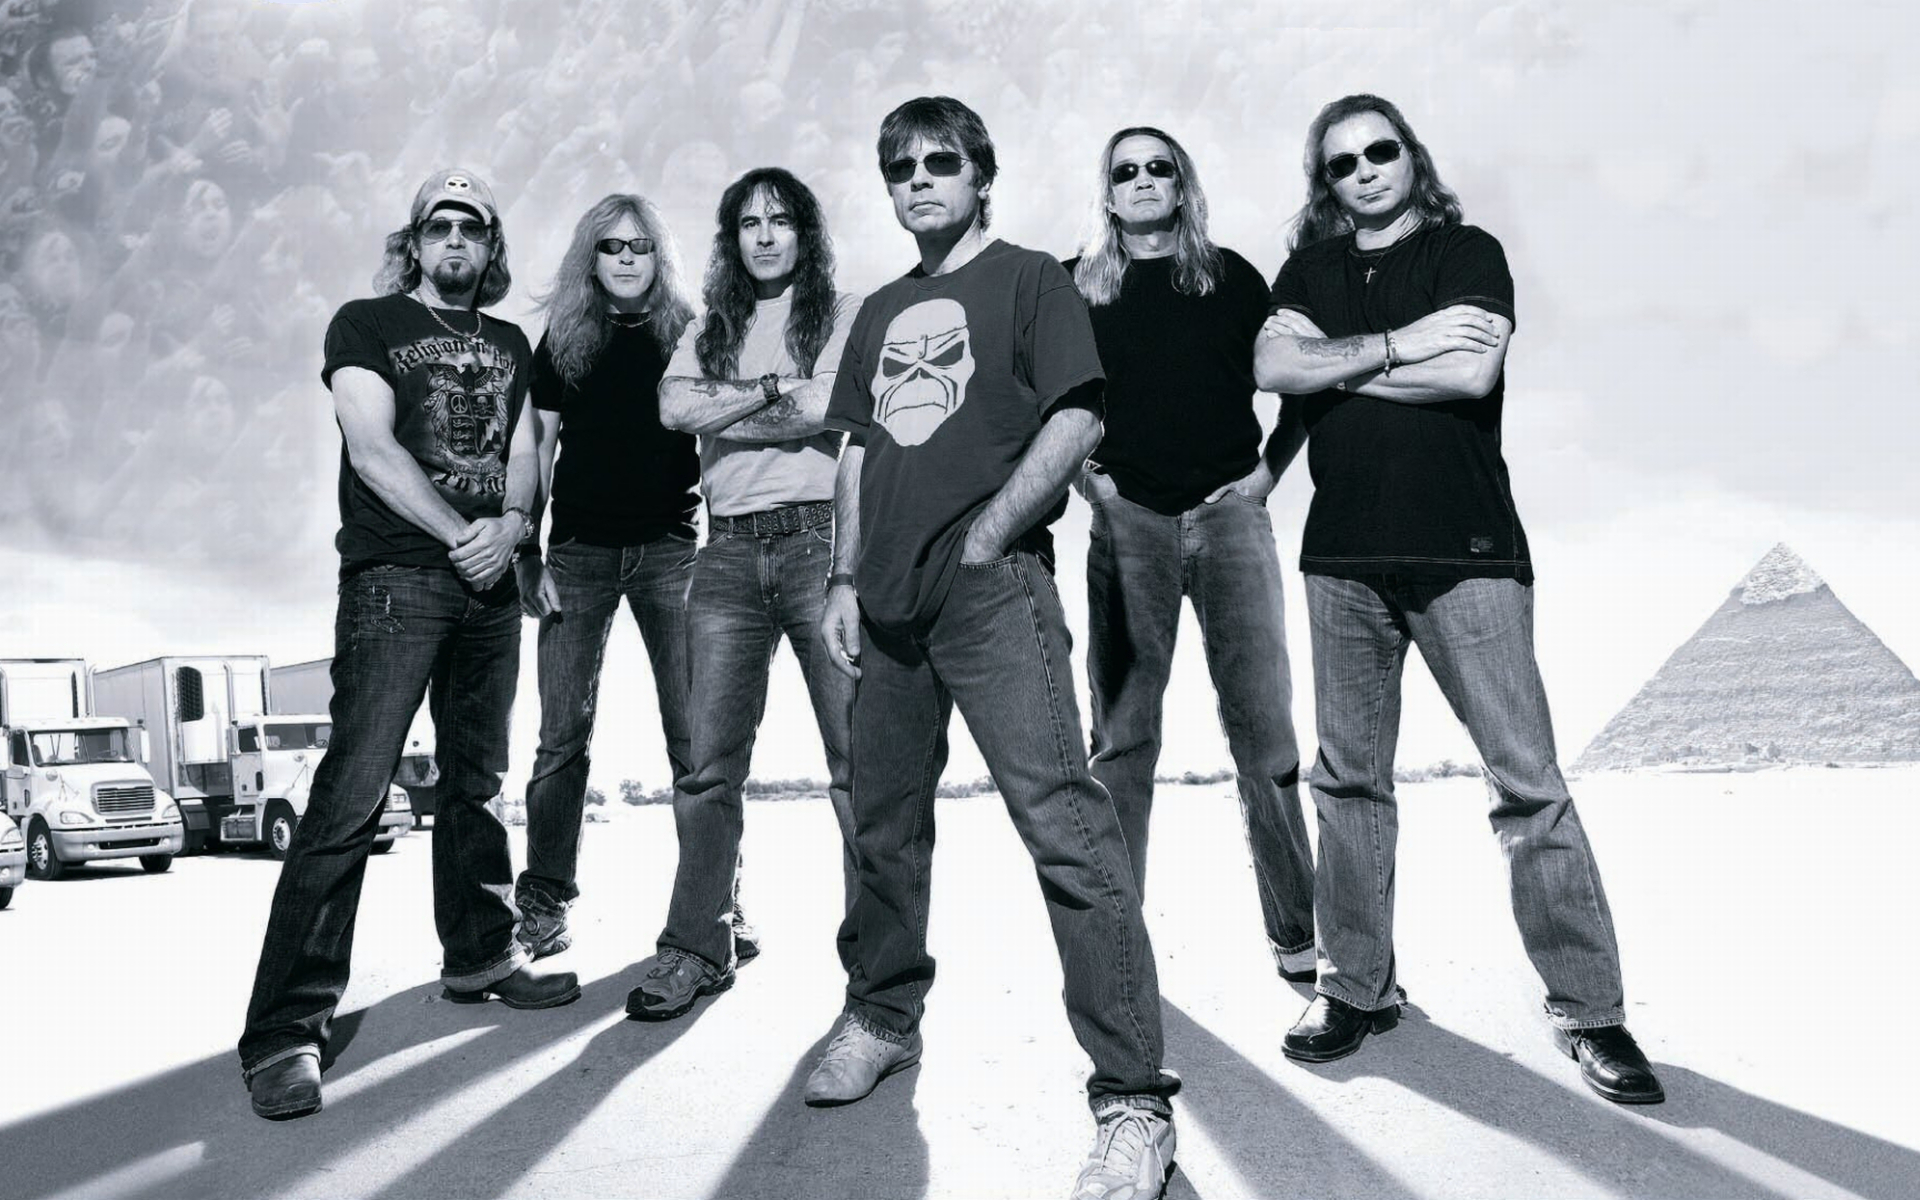 Spain Wallpaper Iphone Iron Maiden Wallpapers Pictures Images